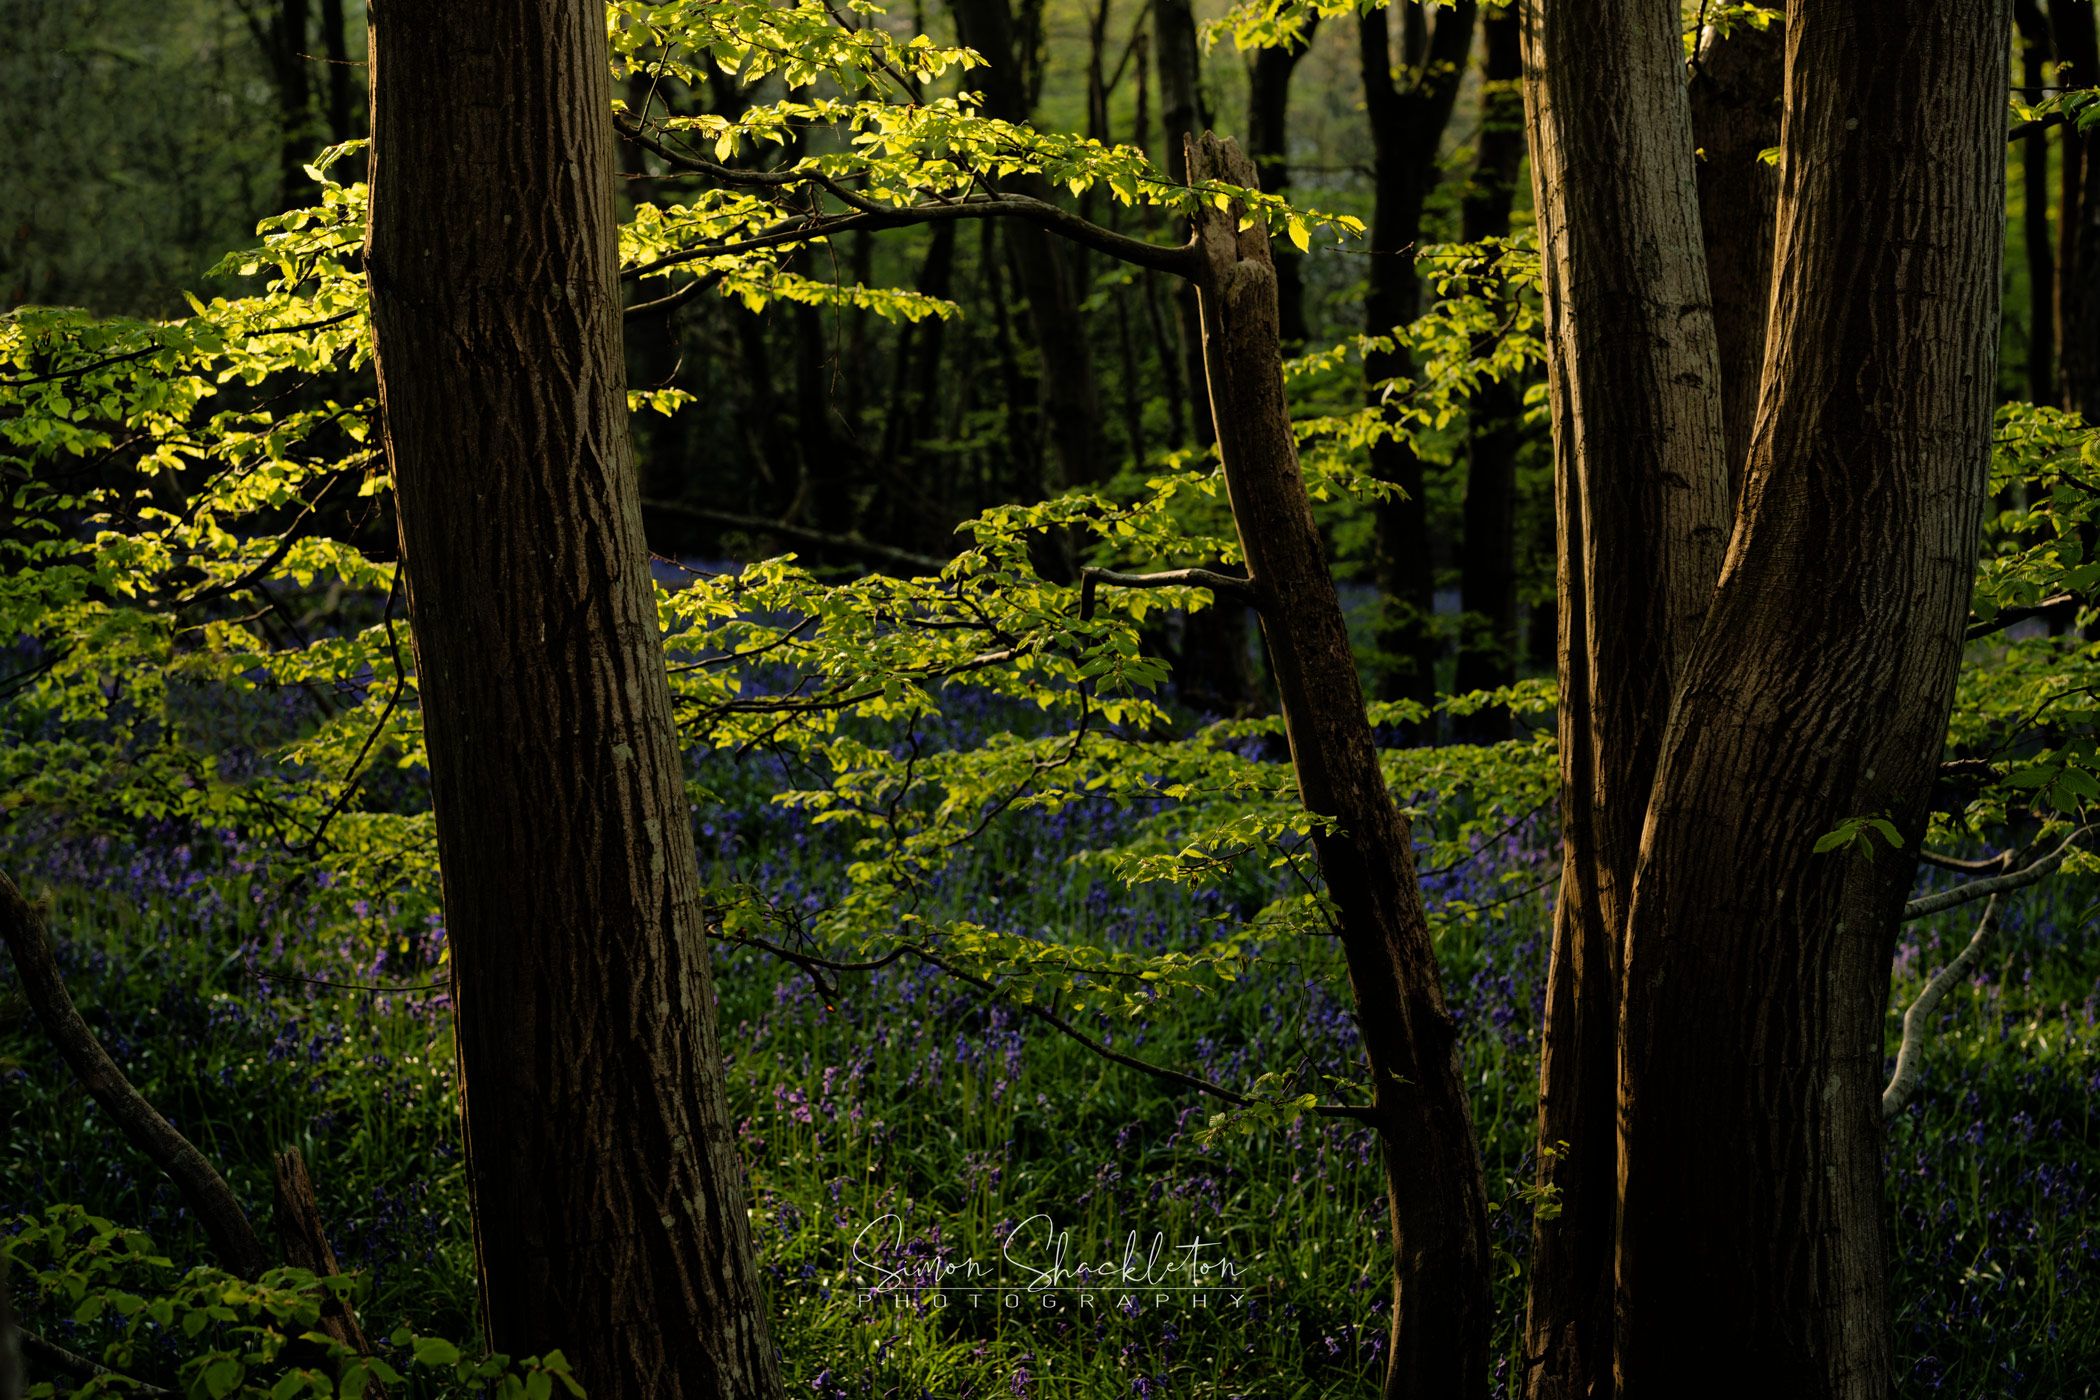 Bluebells and Beech leaves in the Golden Hour of Dawn.